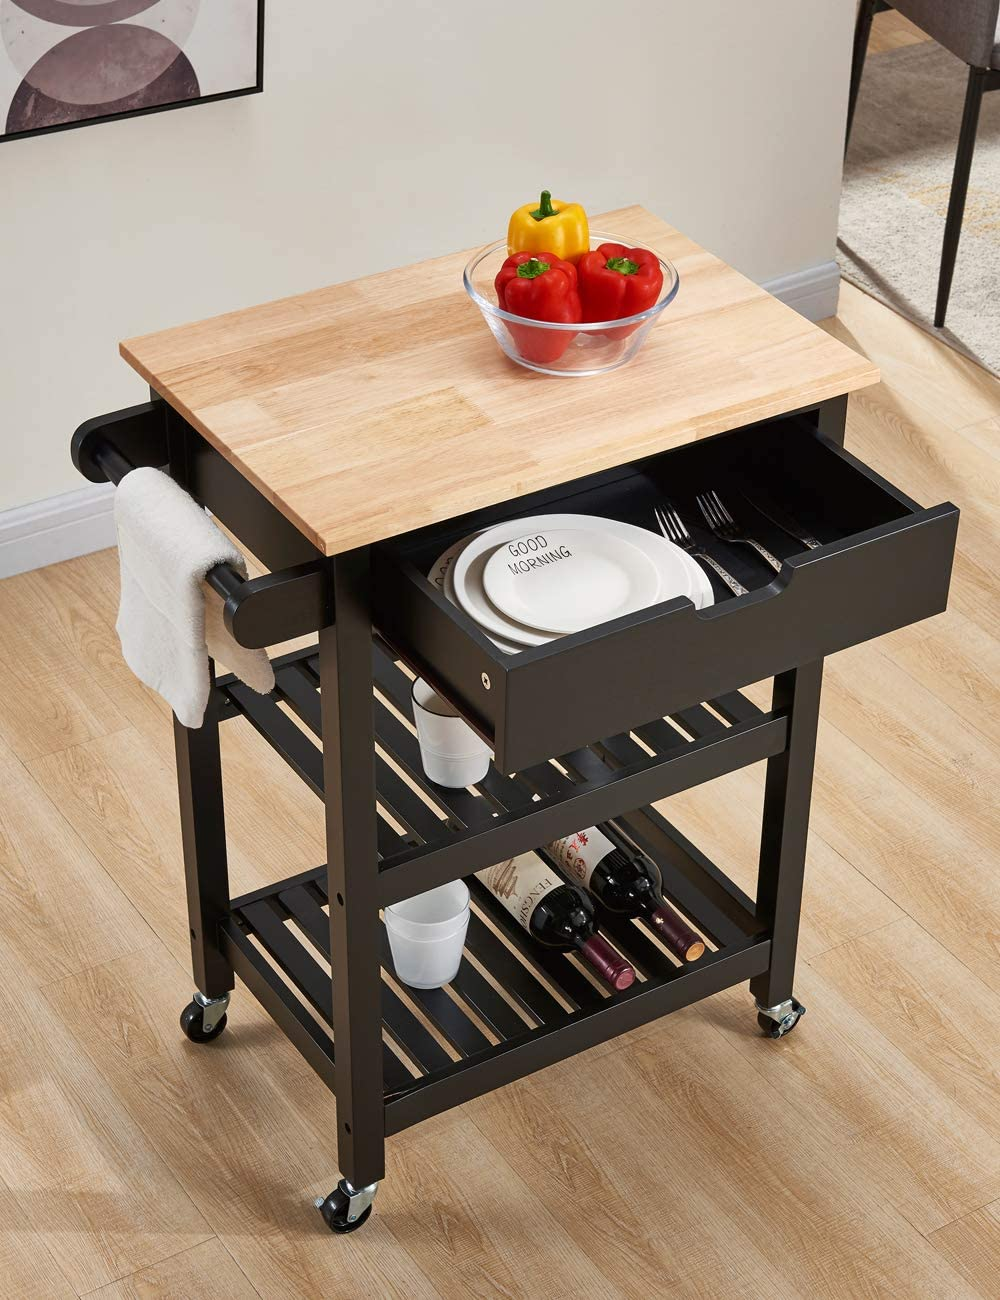 Linio-home Microwave Carts Kitchen Carts with Storage and Drawers, Rolling Island for Kitchen, Small Kitchen Island on Wheels, Black